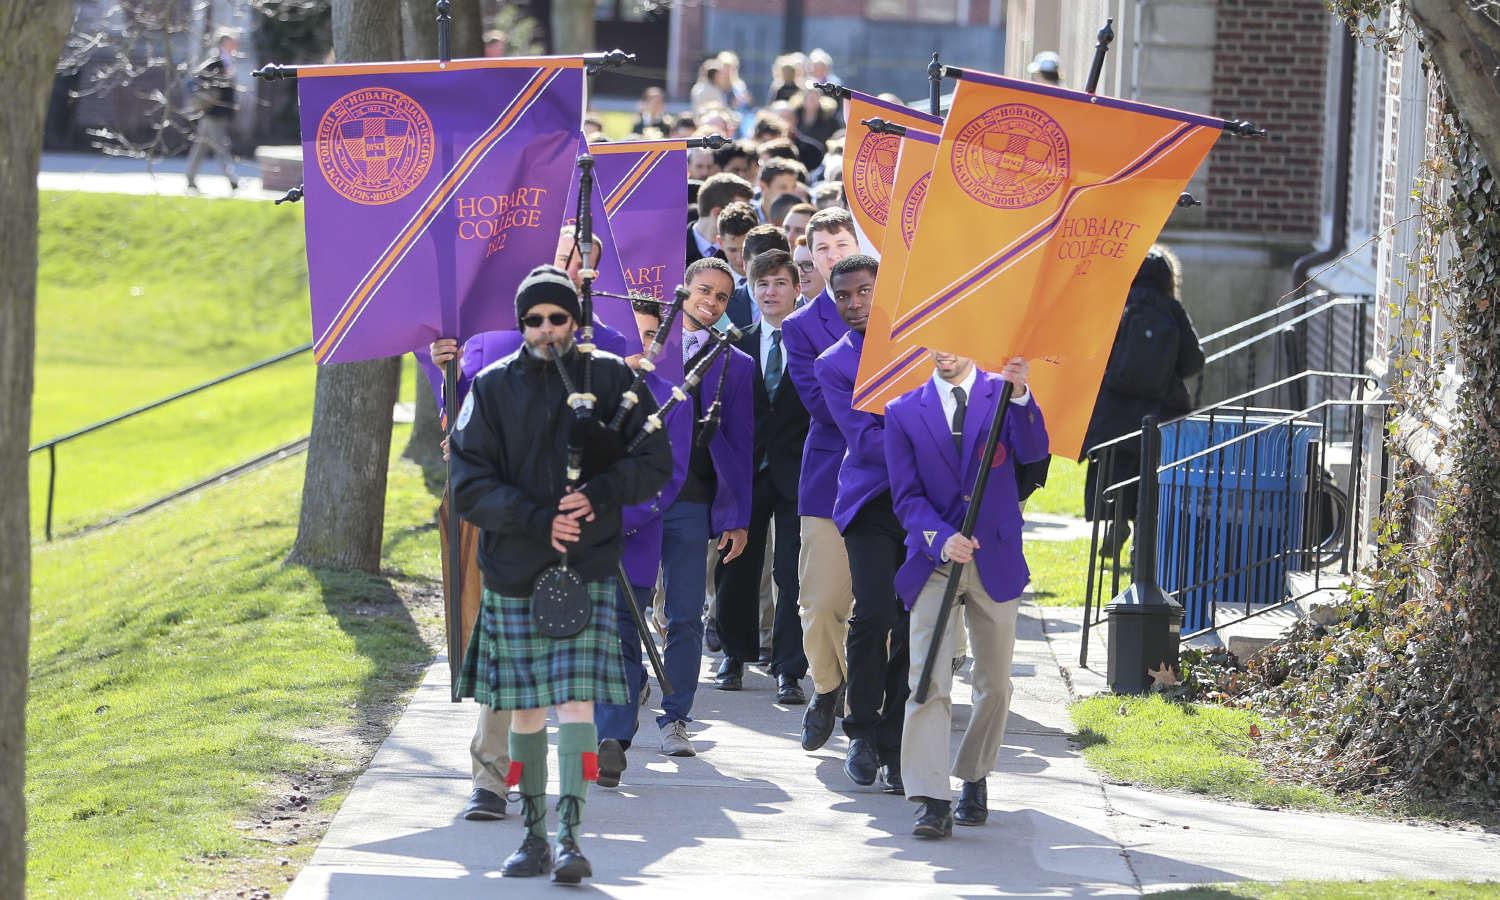 Hobart students and alums process past Medbery Hall to commence the Charter Day ceremony. One of the year's honored celebrations, Charter Day is held each spring to commemorate the granting of Hobart's charter by the State of New York on April 10, 1822.